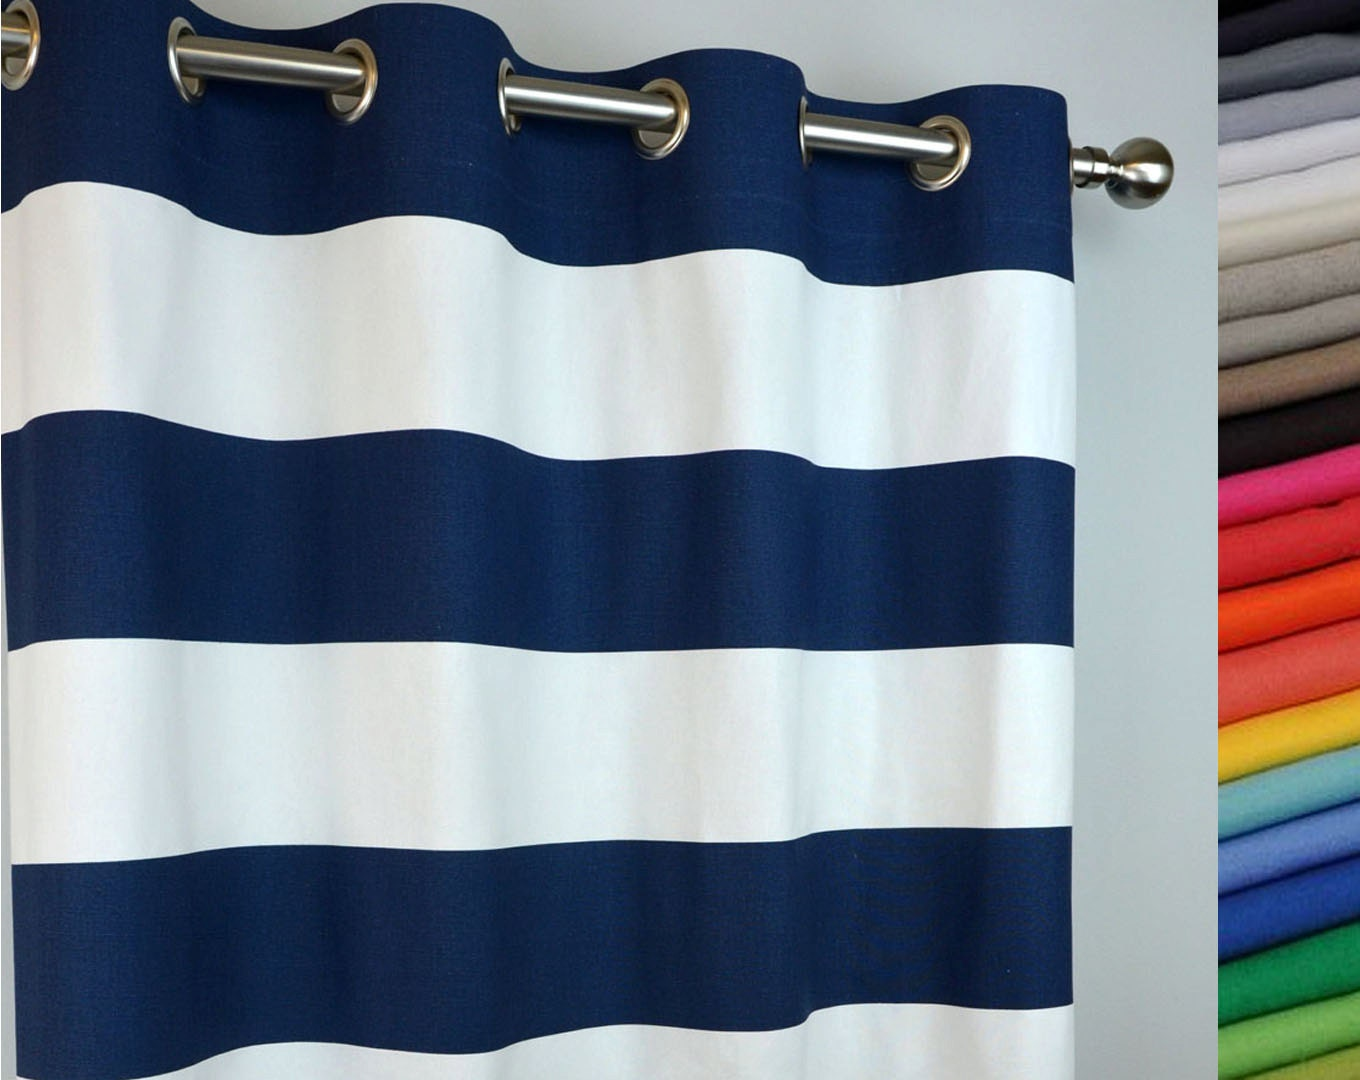 Grommet Curtain In Navy Blue And White Cabana By Zeldabelle